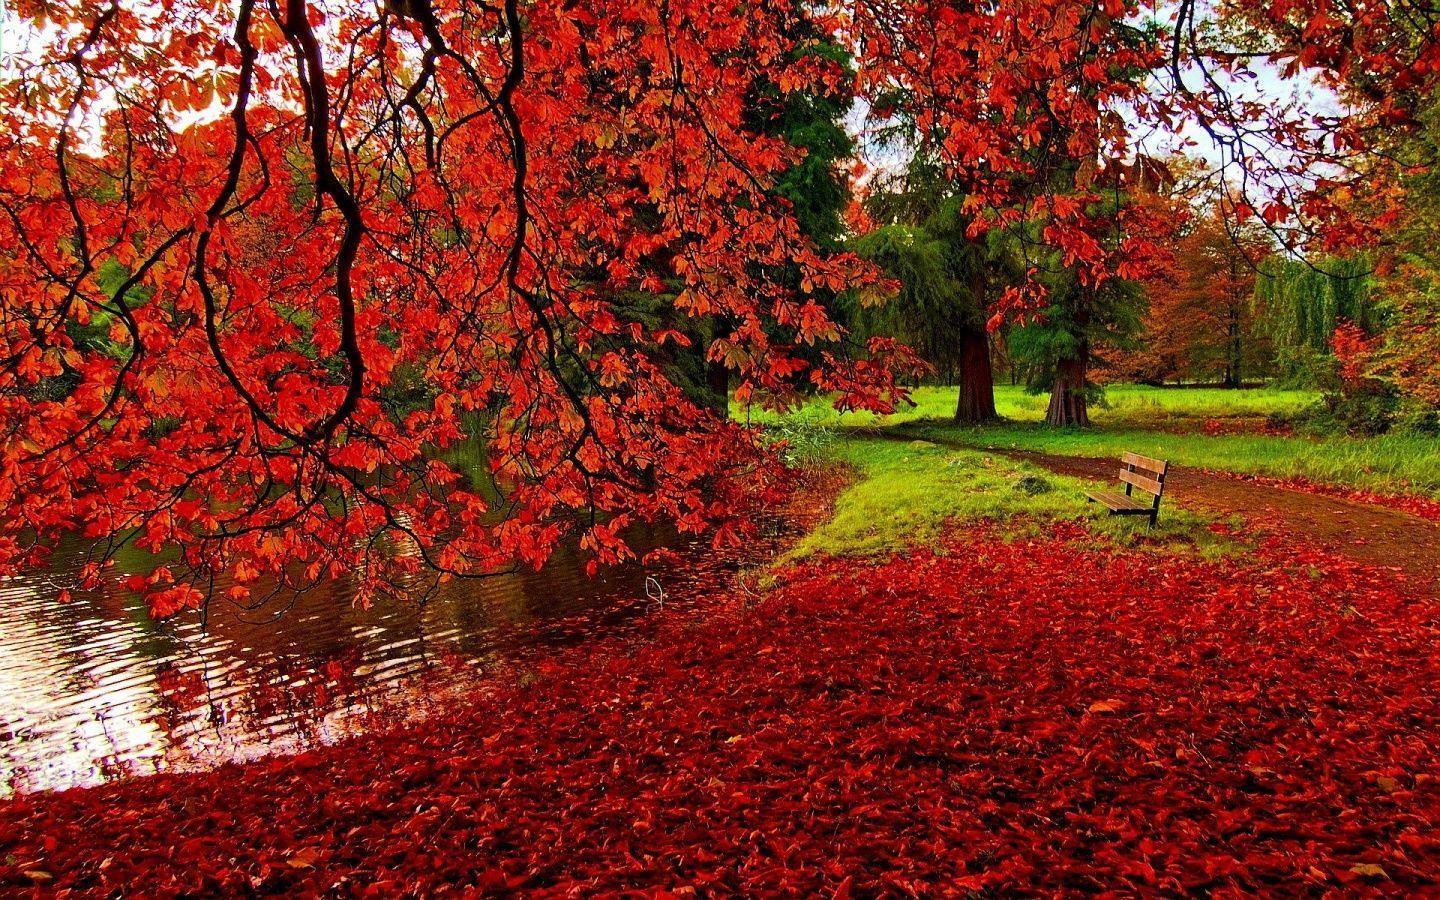 Autumn Wallpaper Download Important Wallpapers Fall Wallpaper Autumn Scenery Scenery Wallpaper